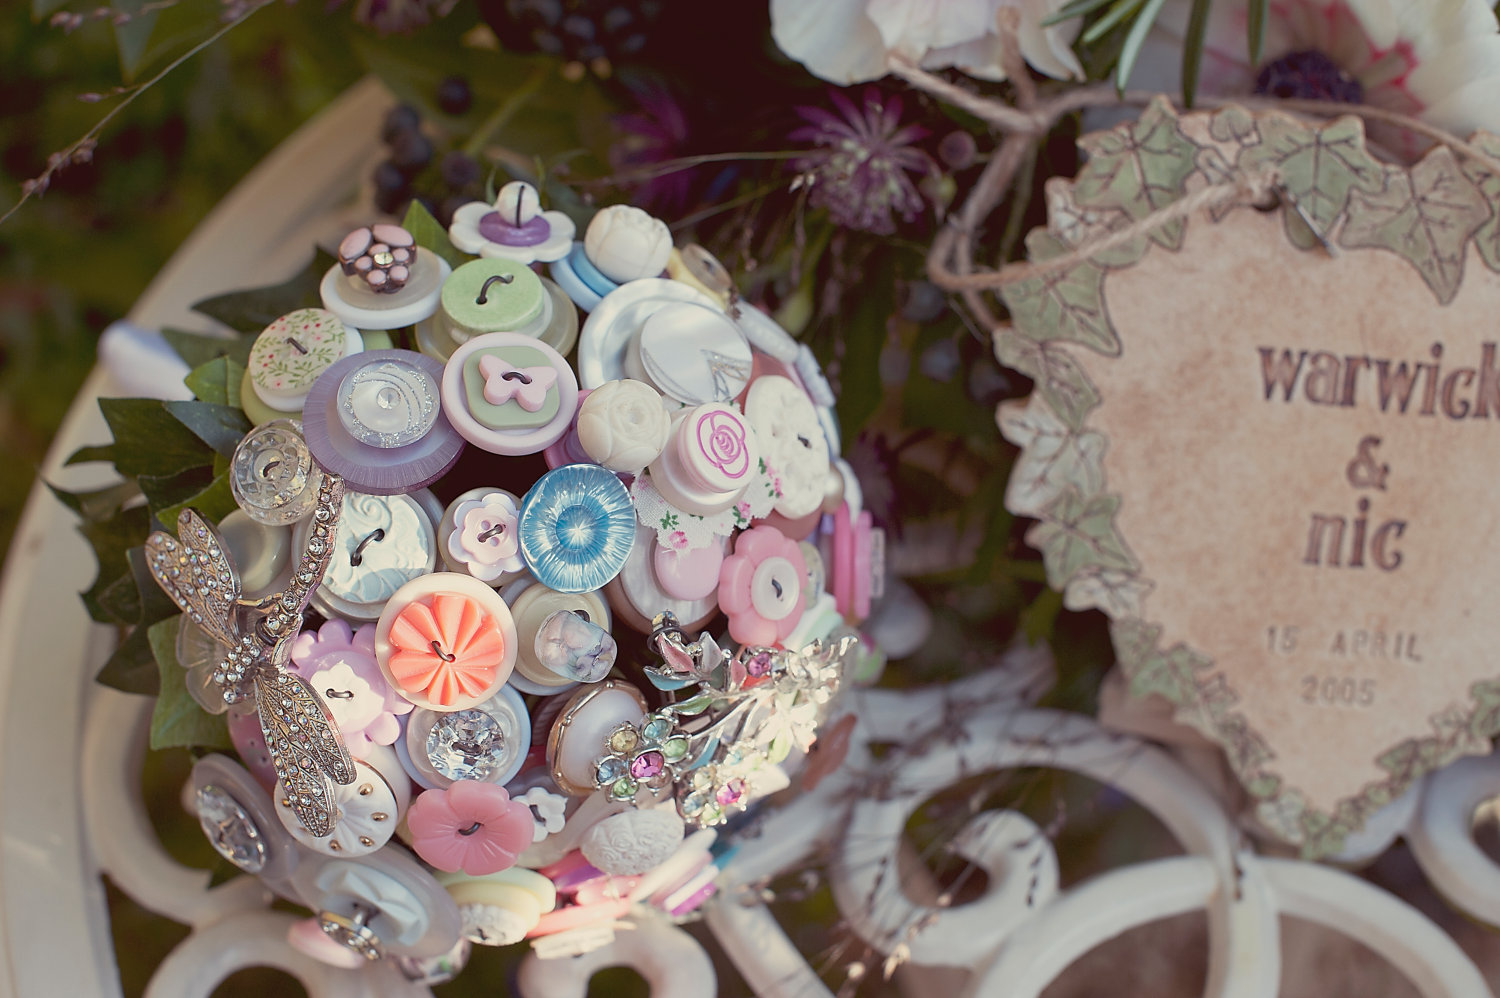 Button Bridal Bouquet Etsy : Wedding flower alternatives bridal bouquets from etsy